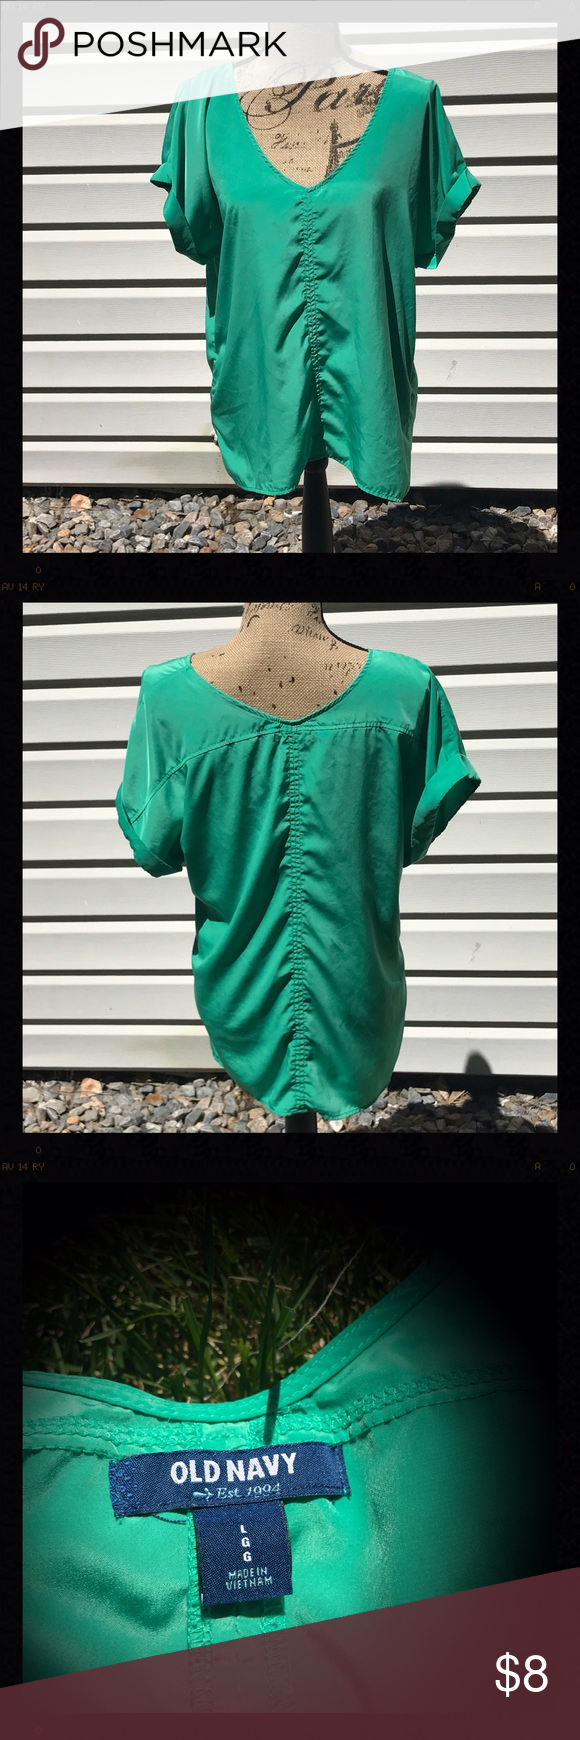 Old Navy blouse Green silky old Navy blouse. Loose fitting. Great for summer! Good condition! Old Navy Tops Blouses